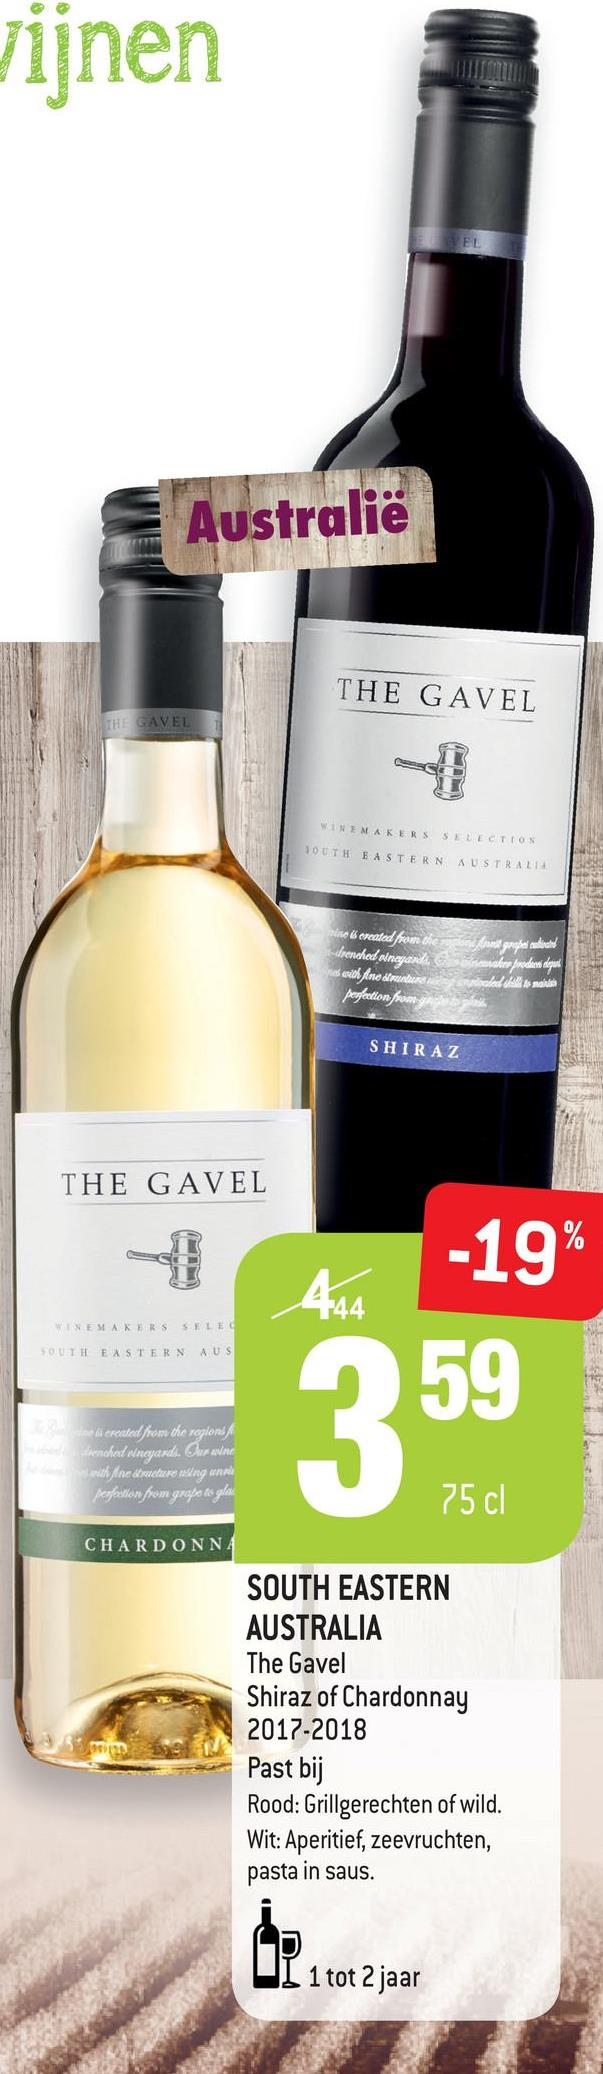 vijnen EL Australie THE GAVEL THE GAVEL WINEMAKERS SLLECTION 10 UTH EASTERN AUSTRALIA ne ereated from the drenched sinayardı, les with fine mundur pegetion from nel gauge are produs alique కe #self}} SHIRAZ THE GAVEL -19% 444 NEAKERS SELE SOUTH EASTERN AUS 59 be ki ercuted from the replons wenched vineyards. Our swine sveth Ane traveler neleng anal Pegation from grape le glas 75 cl CHARDONNA SOUTH EASTERN AUSTRALIA The Gavel Shiraz of Chardonnay 2017-2018 Past bij Rood: Grillgerechten of wild. Wit: Aperitief, zeevruchten, pasta in saus. UL 1 tot 2 jaar